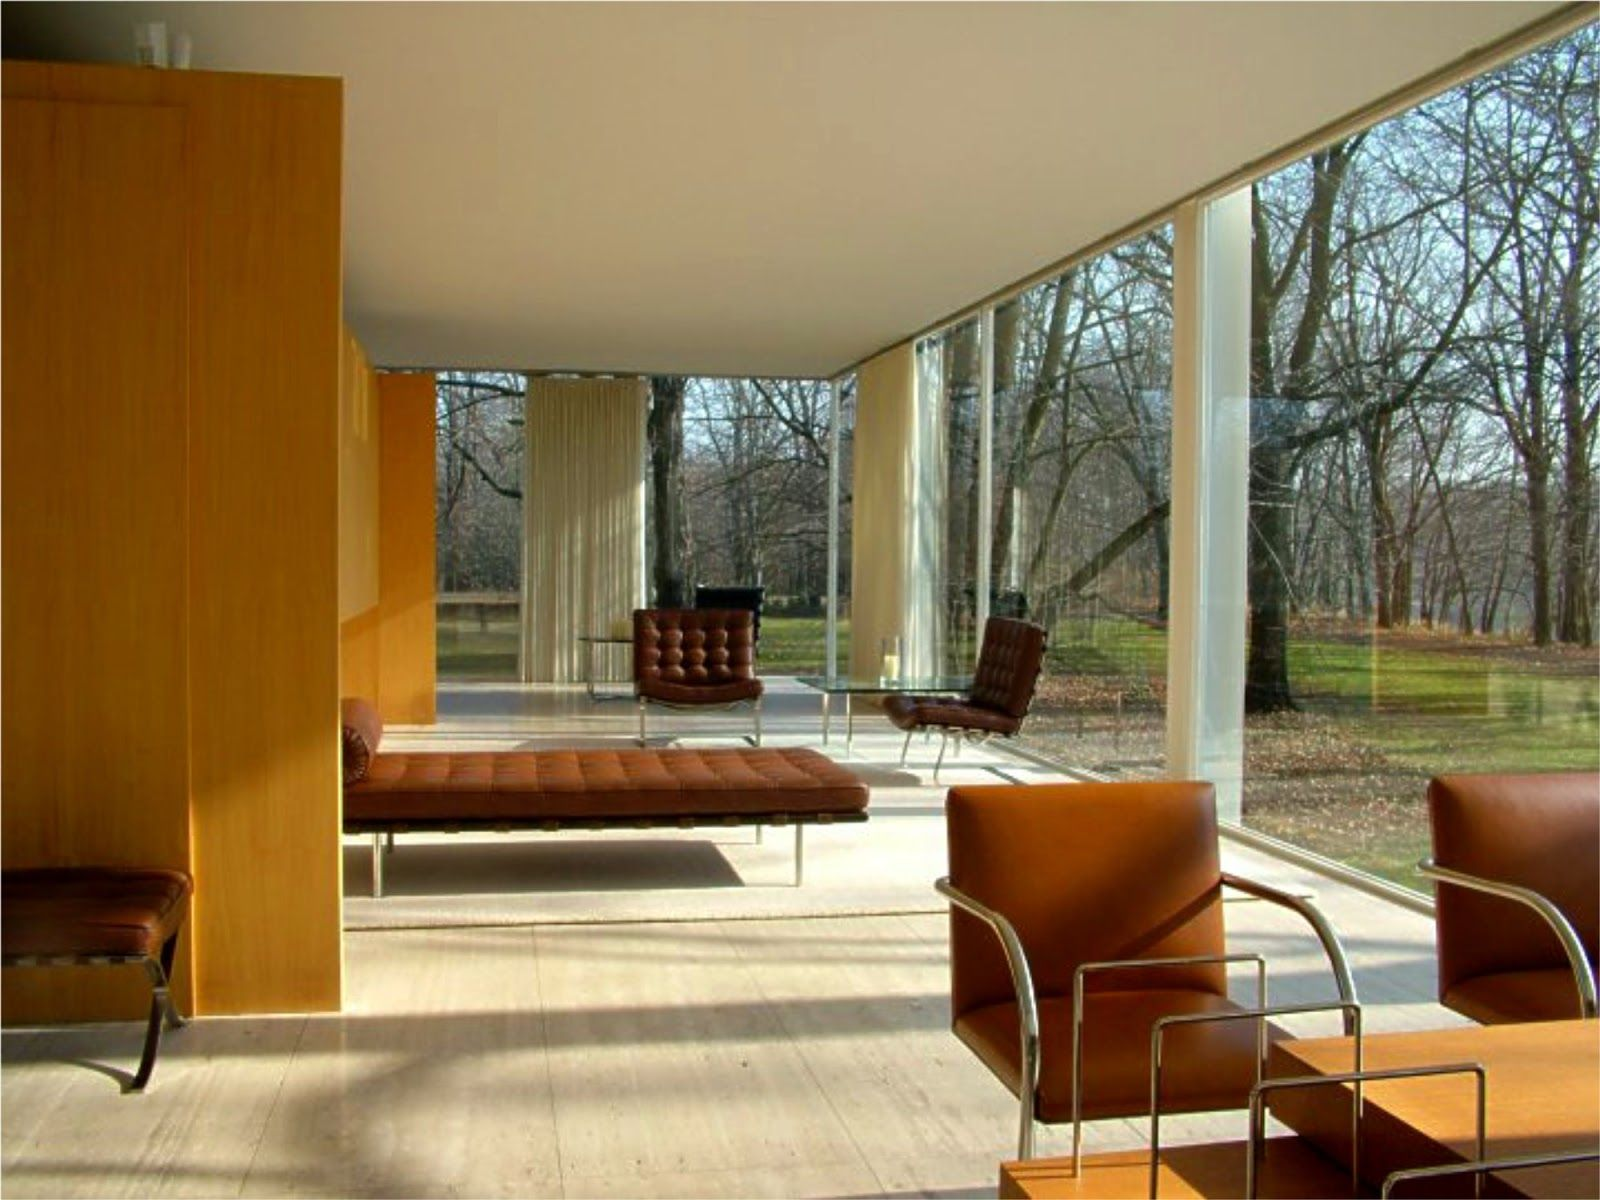 The Farnsworth House, Built By Ludwig Mies Van Der Rohe In 1951